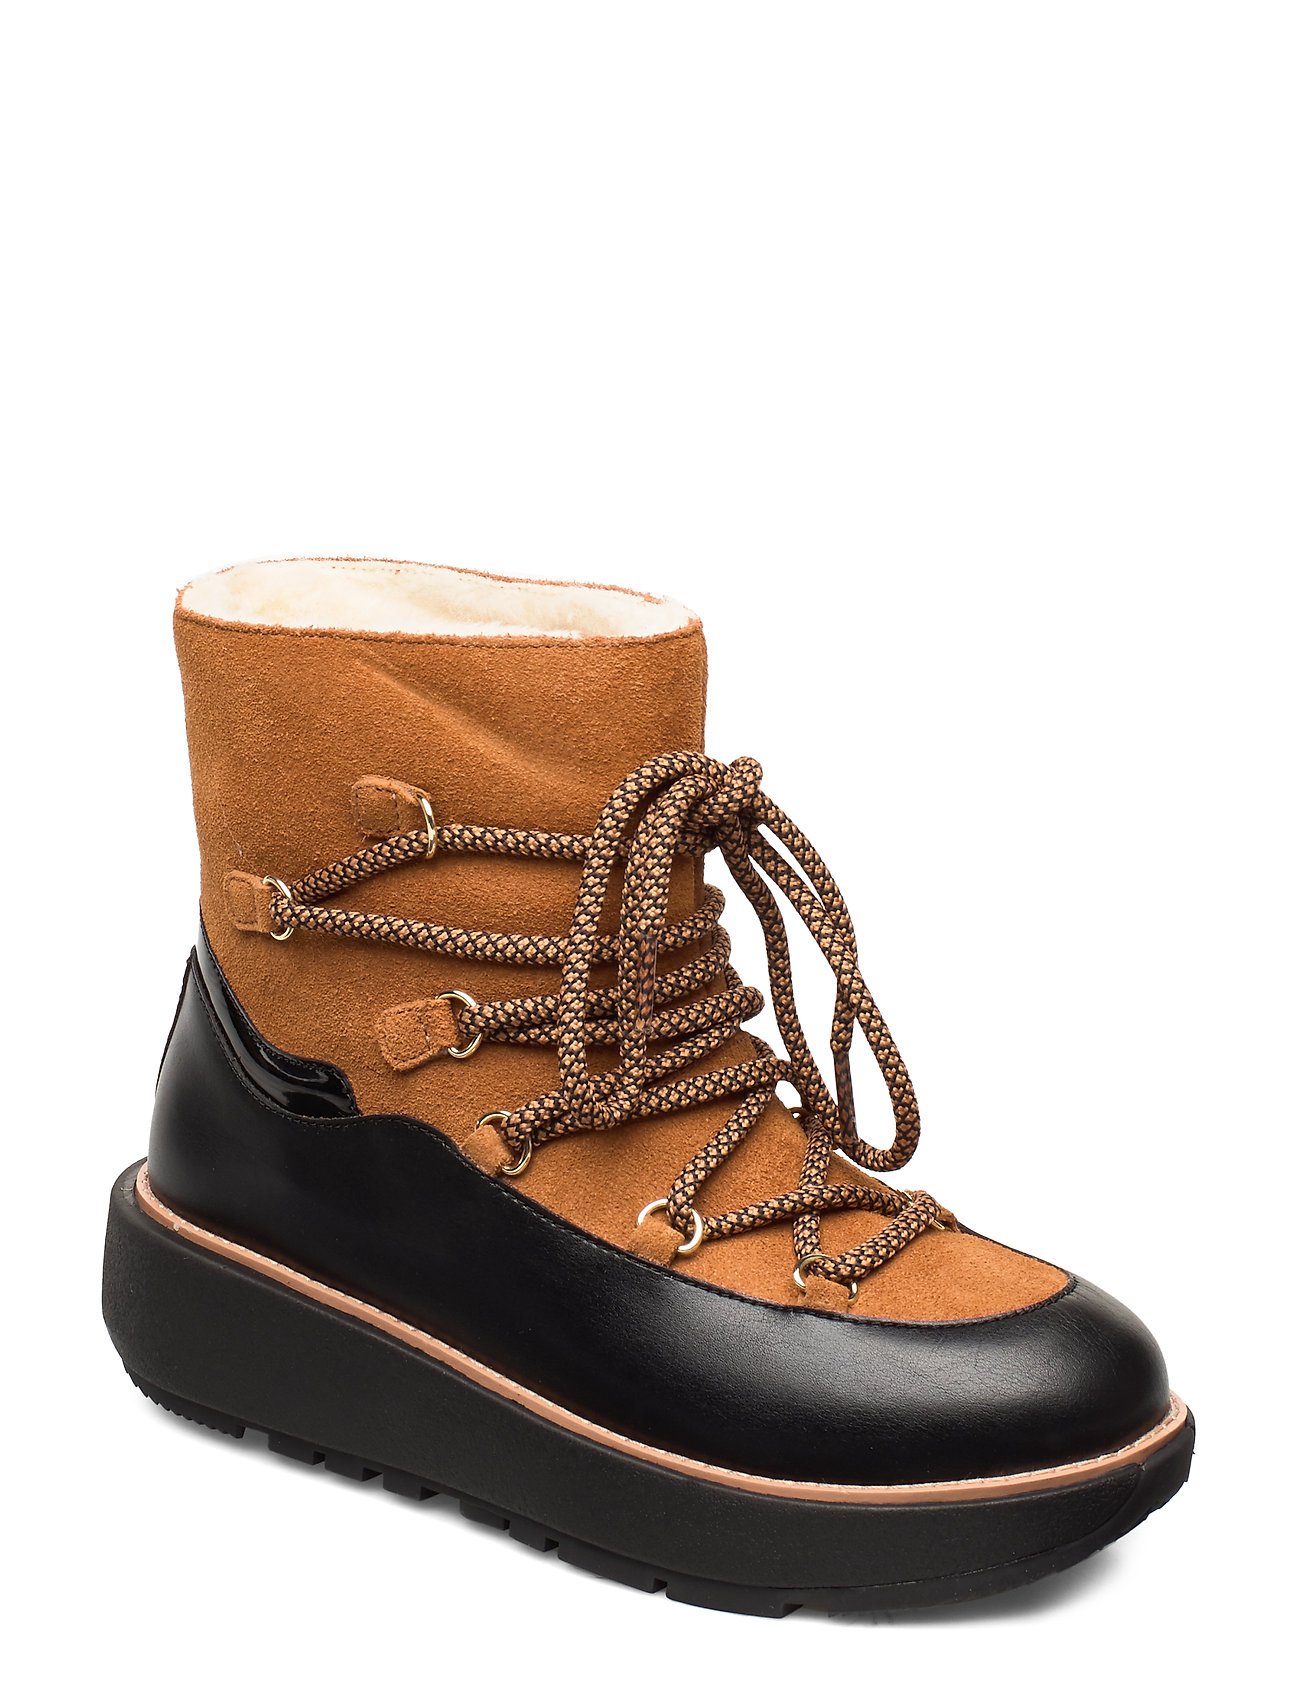 Image of Ebba Ski Ankle Shoes Boots Ankle Boots Ankle Boot - Flat Brun FitFlop (3406208993)